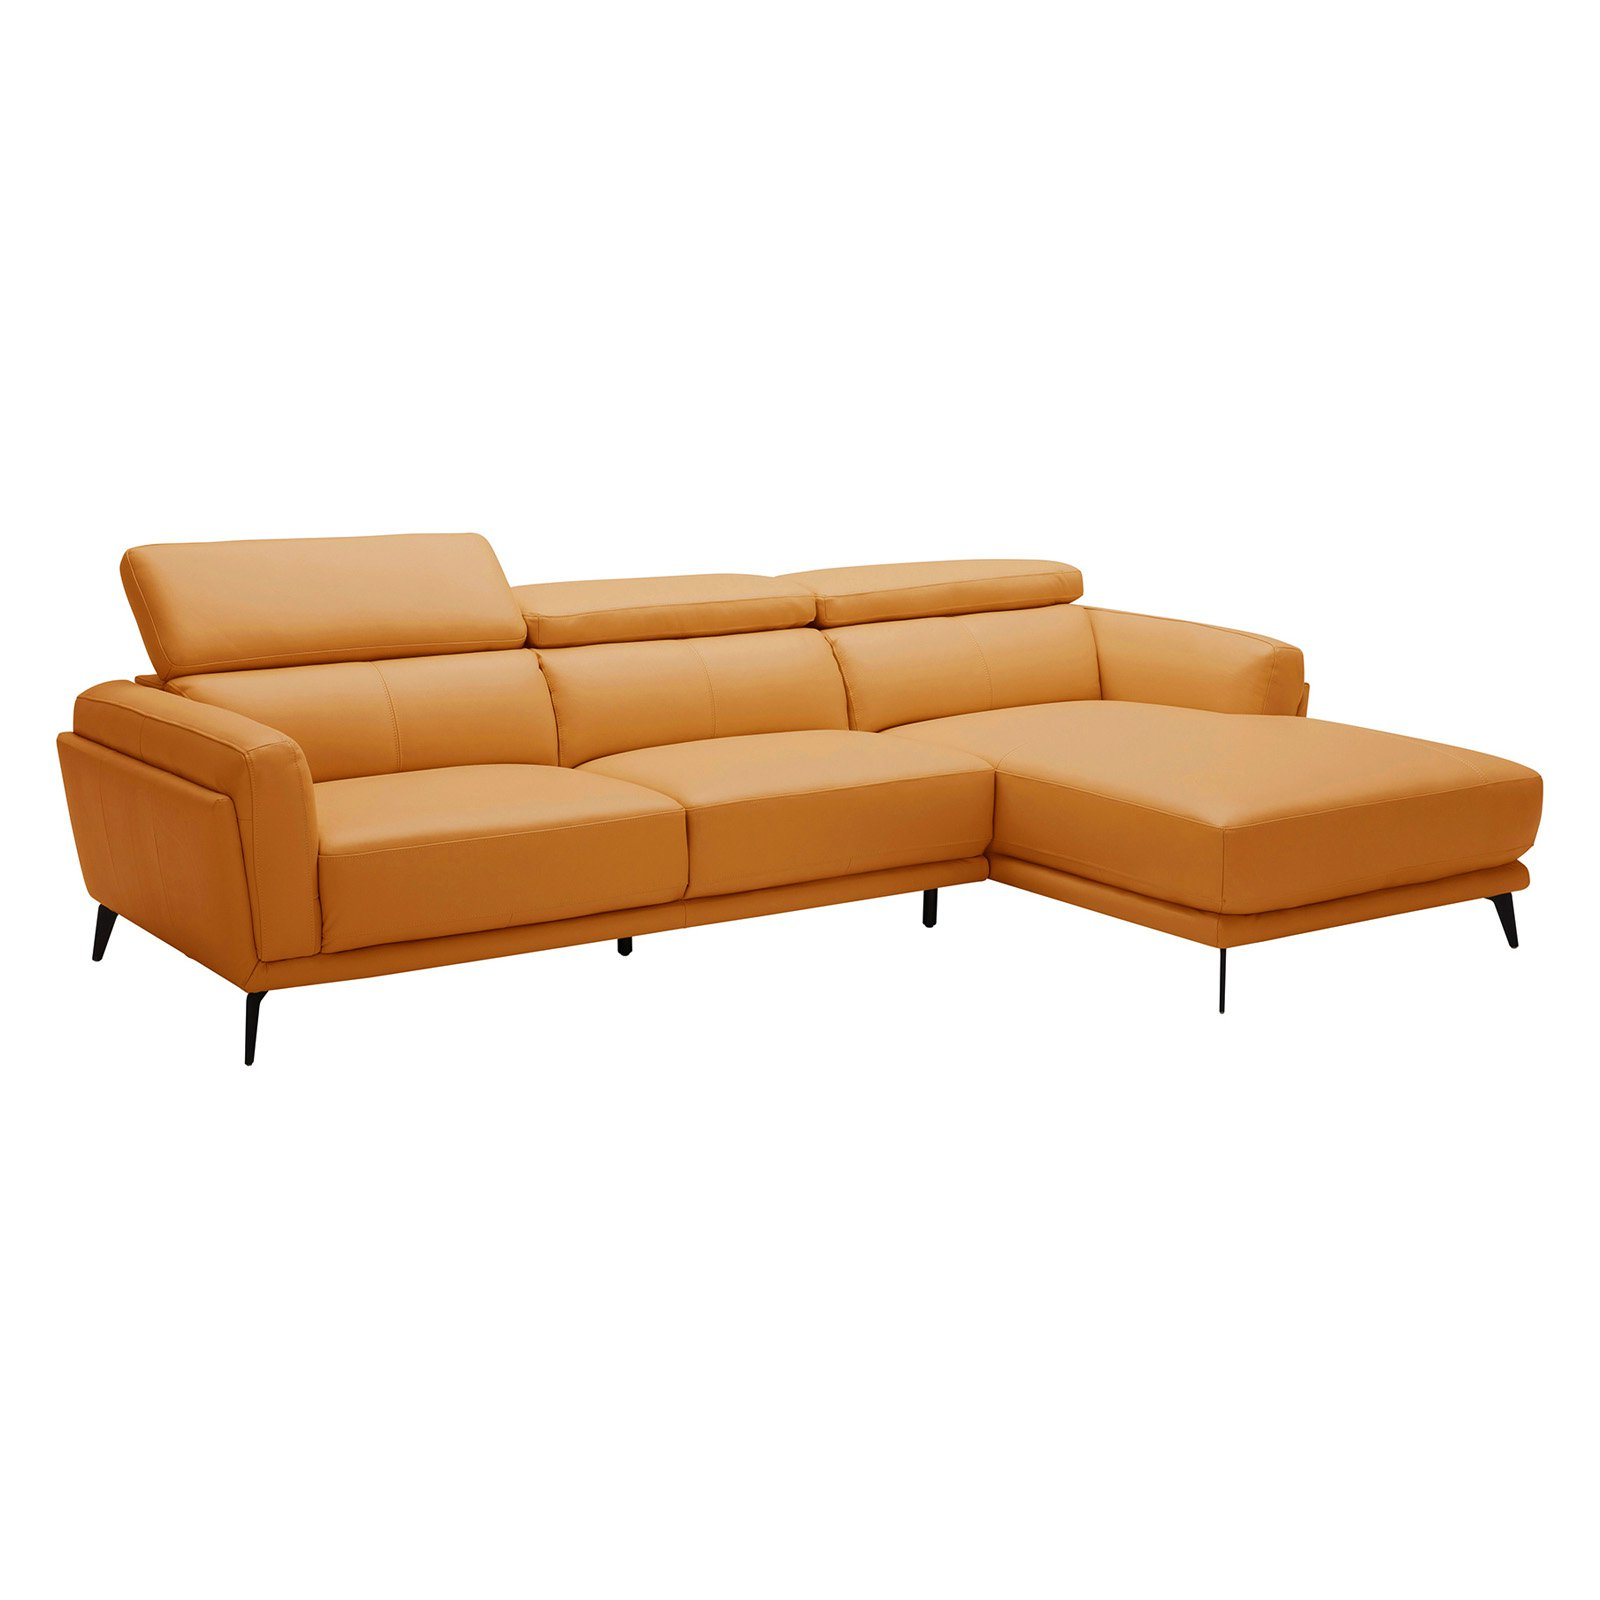 monroe sofa mickey mouse flip open american eagle furniture collection sectional